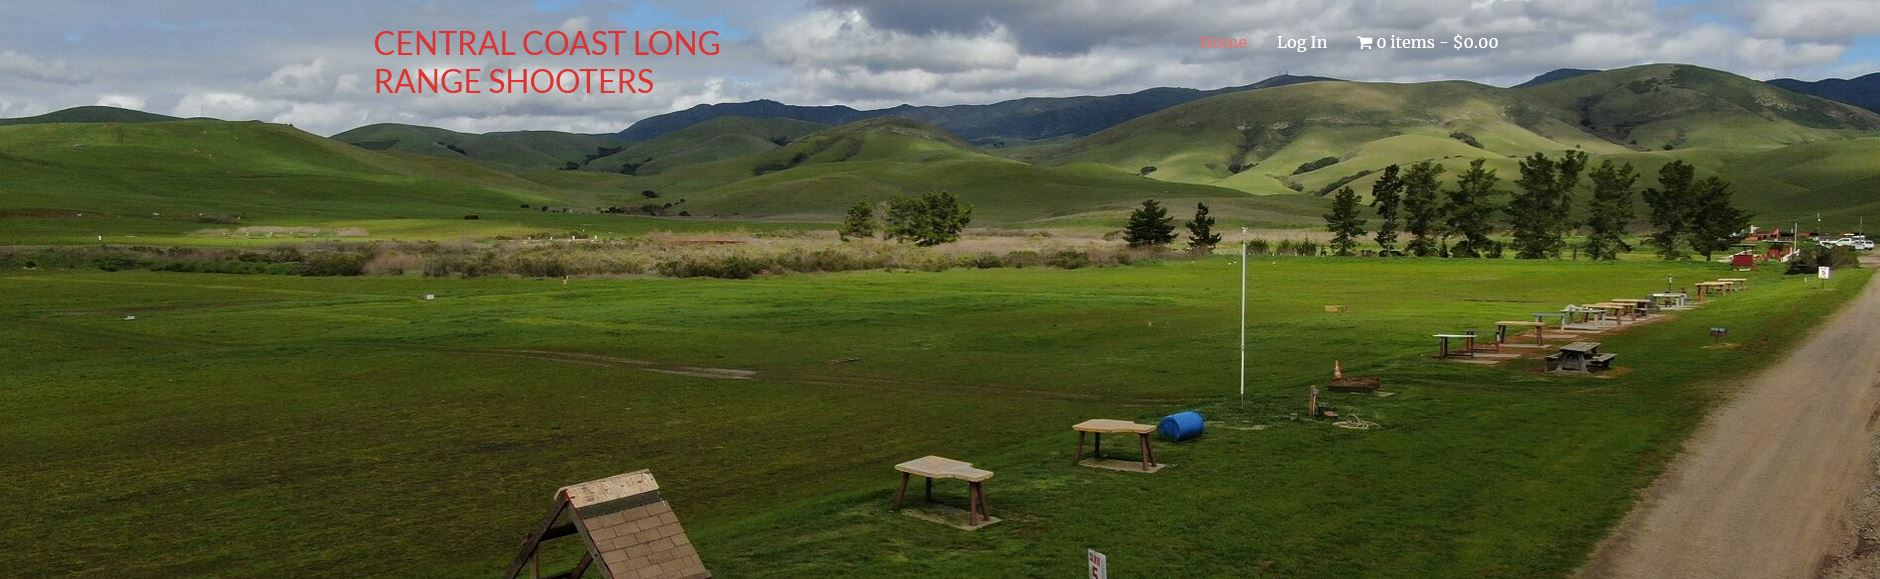 Central Coast Long Range Shooters to host fundraiser for law enforcement injured during Paso Robles active shooting